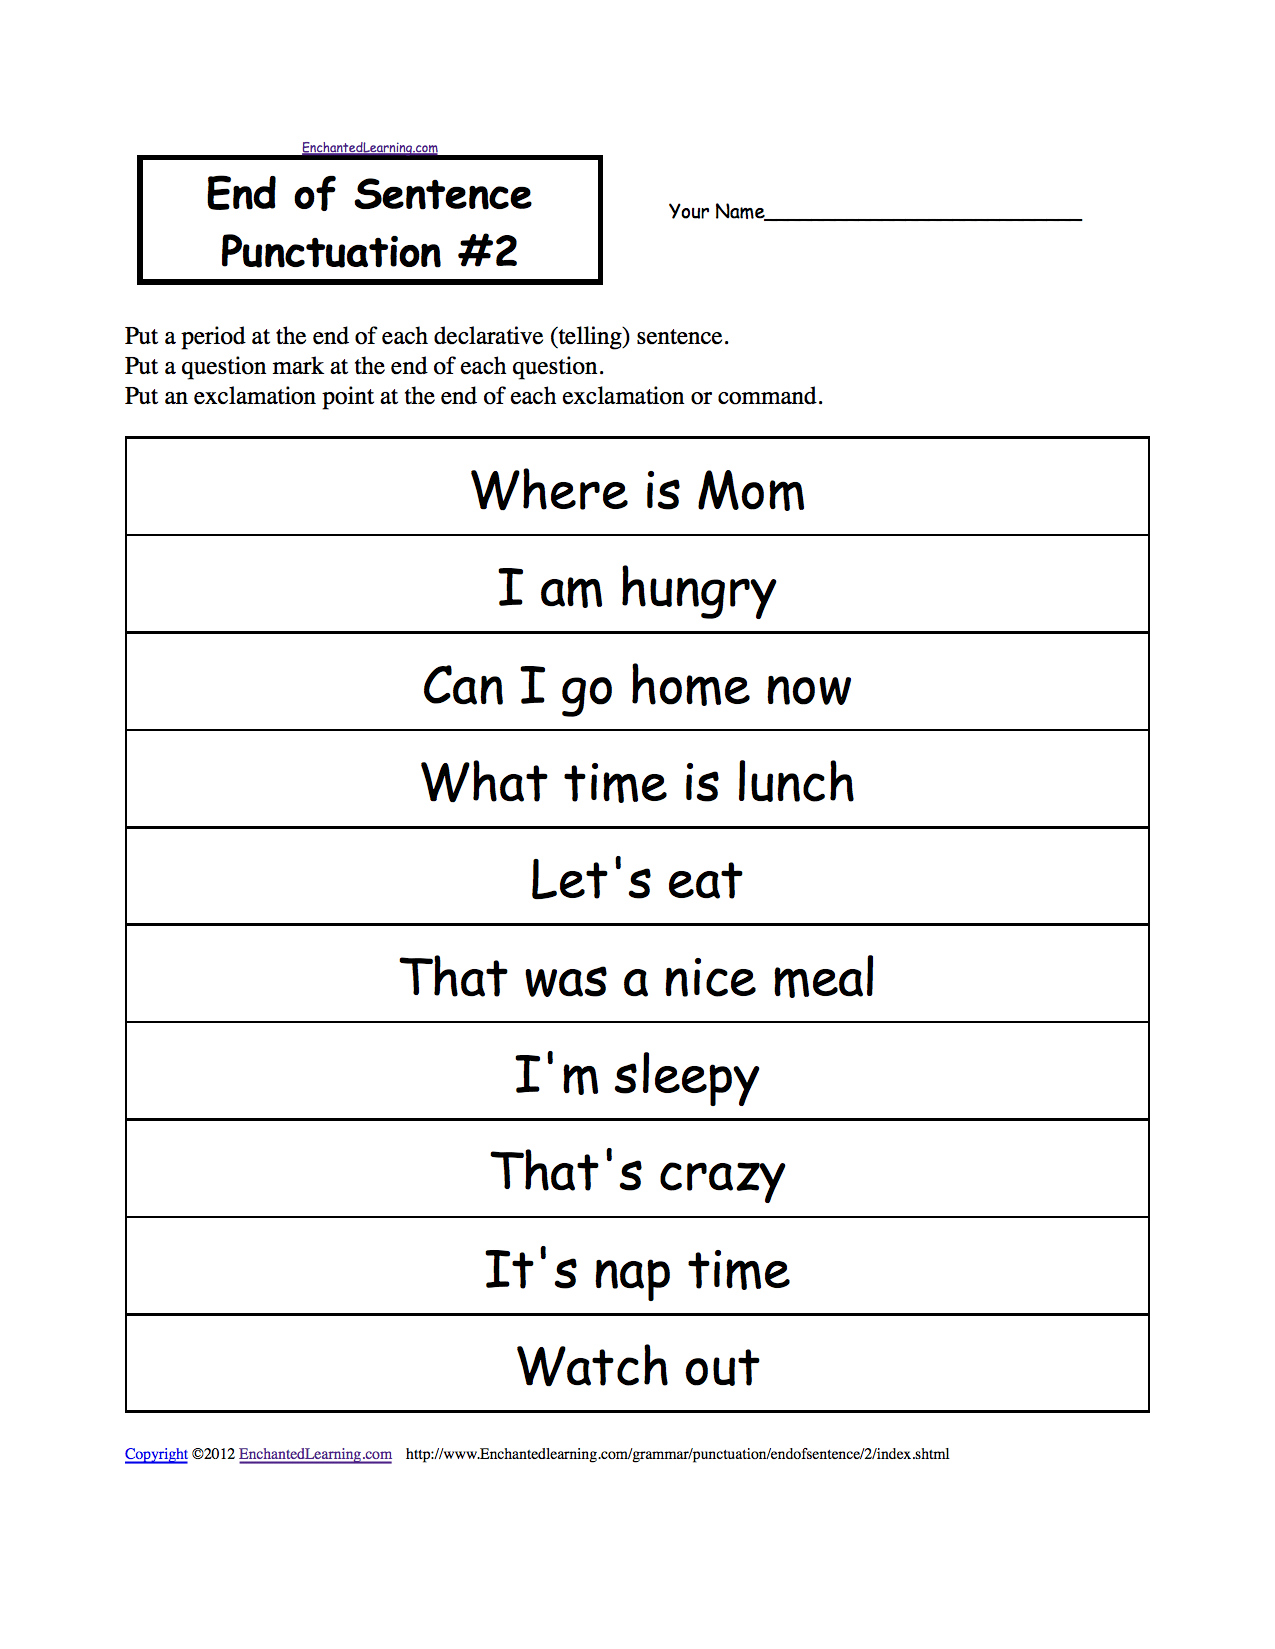 Worksheet Grade 2 Comprehension Worksheets English worksheets for grade 2 english pdf worksheet printable punctuation marks enchantedlearning com englishgrammarworksheets101 worksheetsfor lessonslarisa school of language 2